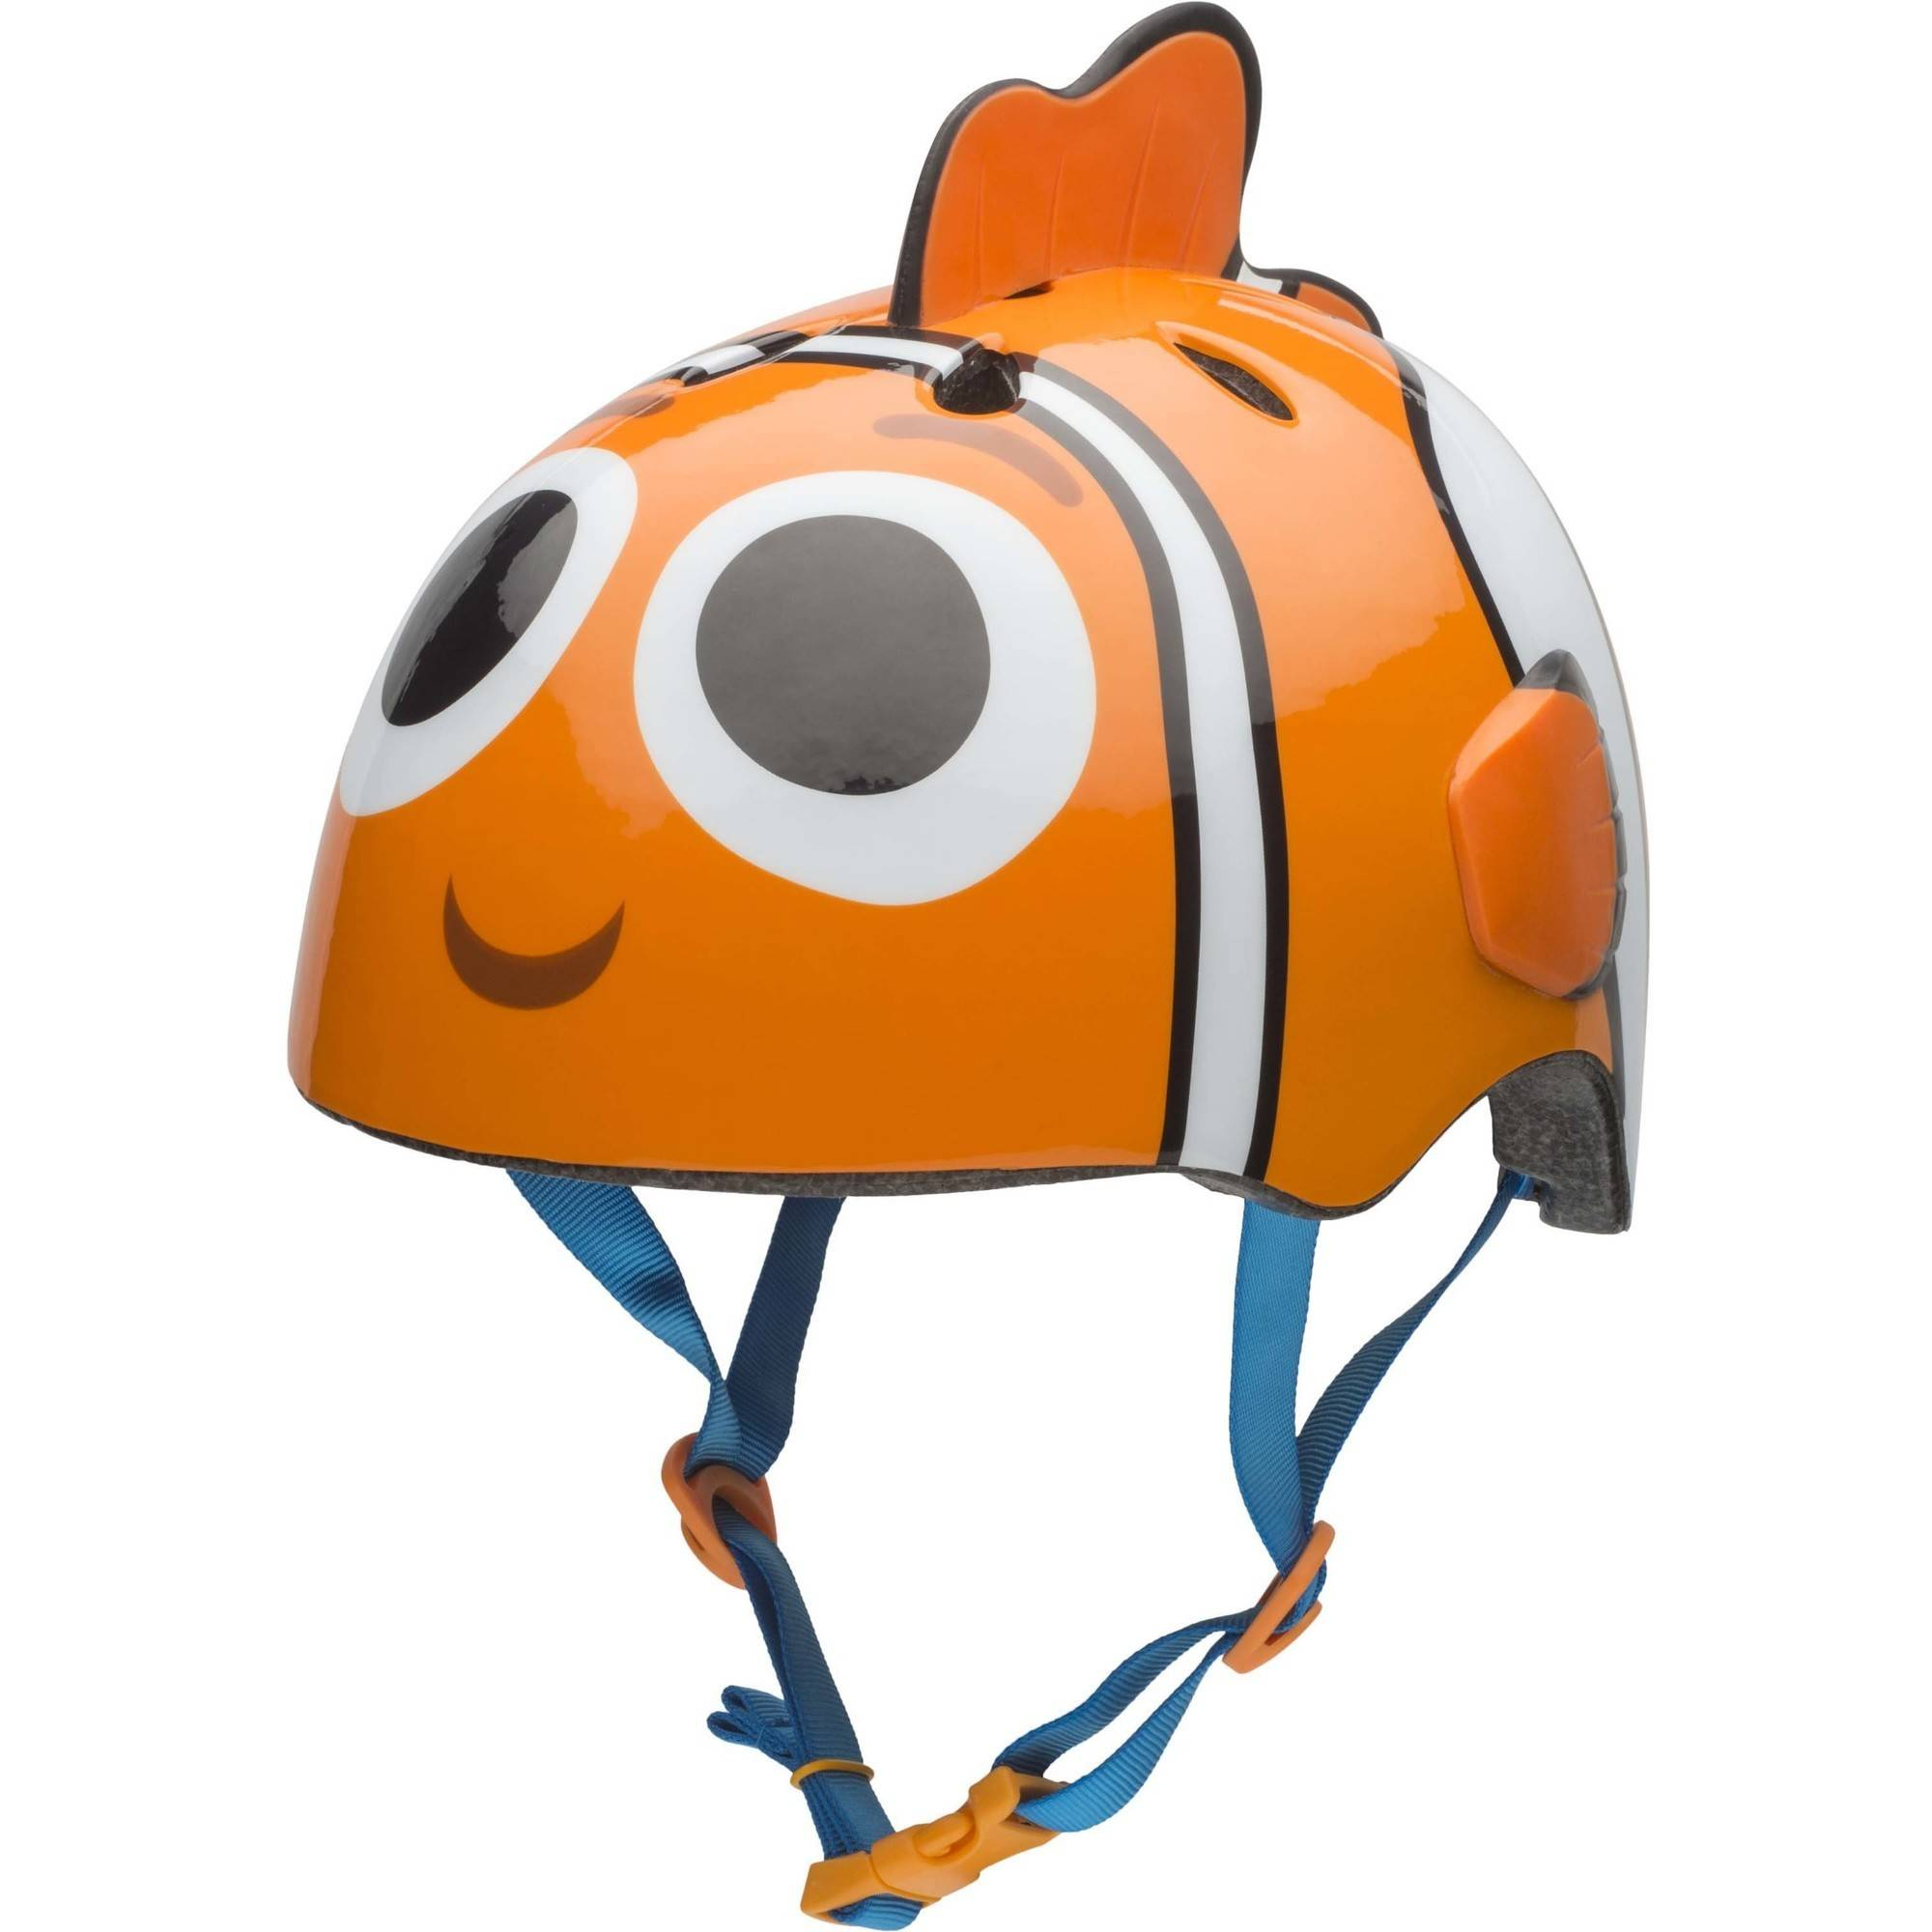 Bell Sports Disney Finding Dory Skate Bicycle Helmet Child 3D Nemo, Orange